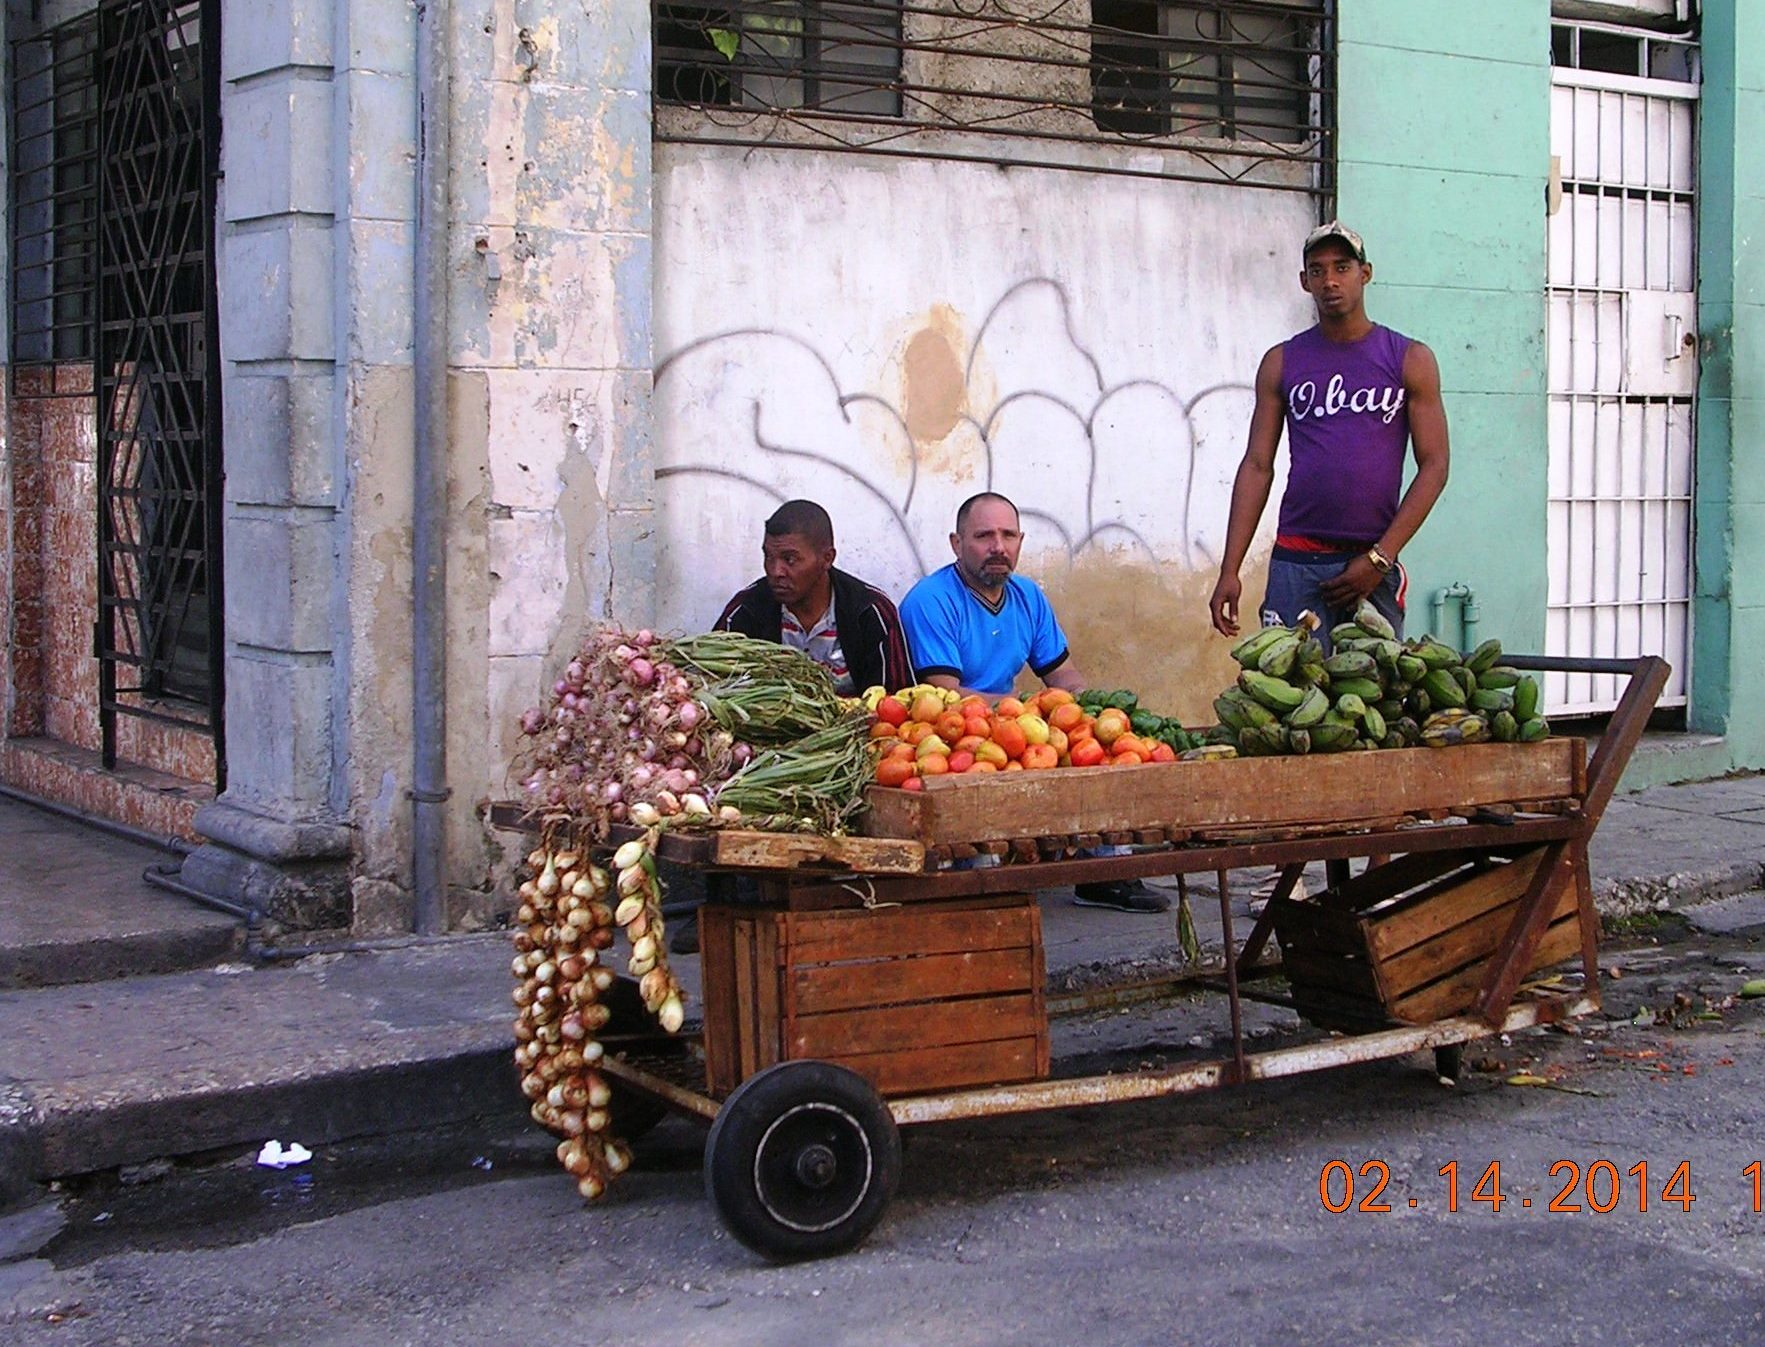 cuban food essay Some consider these to be the biggest cuban celebrations in the louisiana cuban community the seasoning is what gives cuban food its the essay was a.